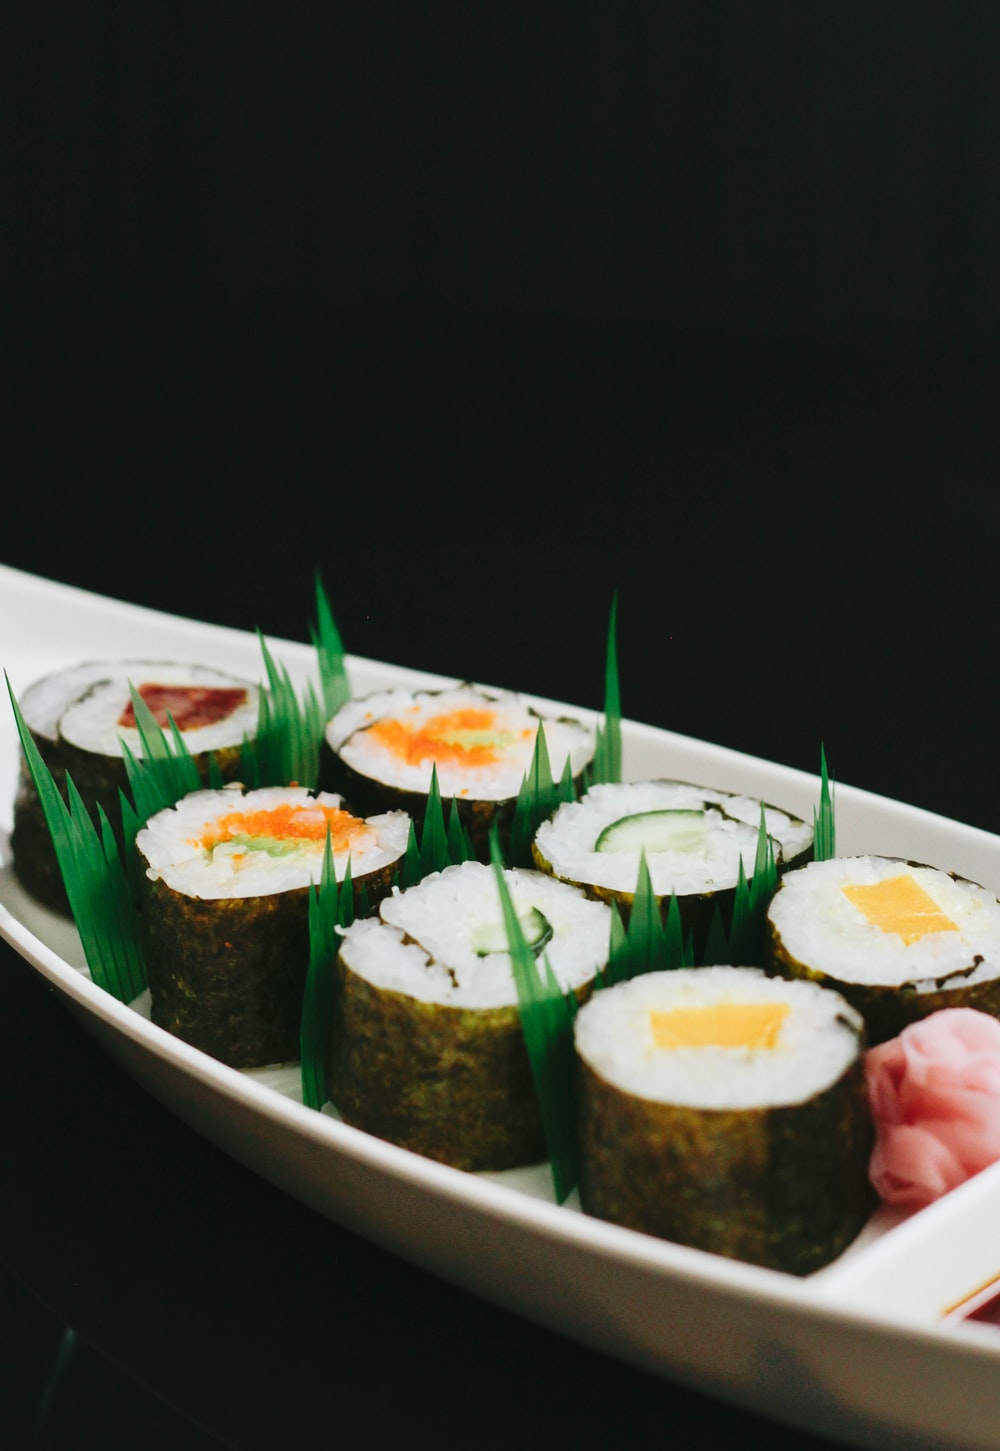 neatly presented sushi on plate